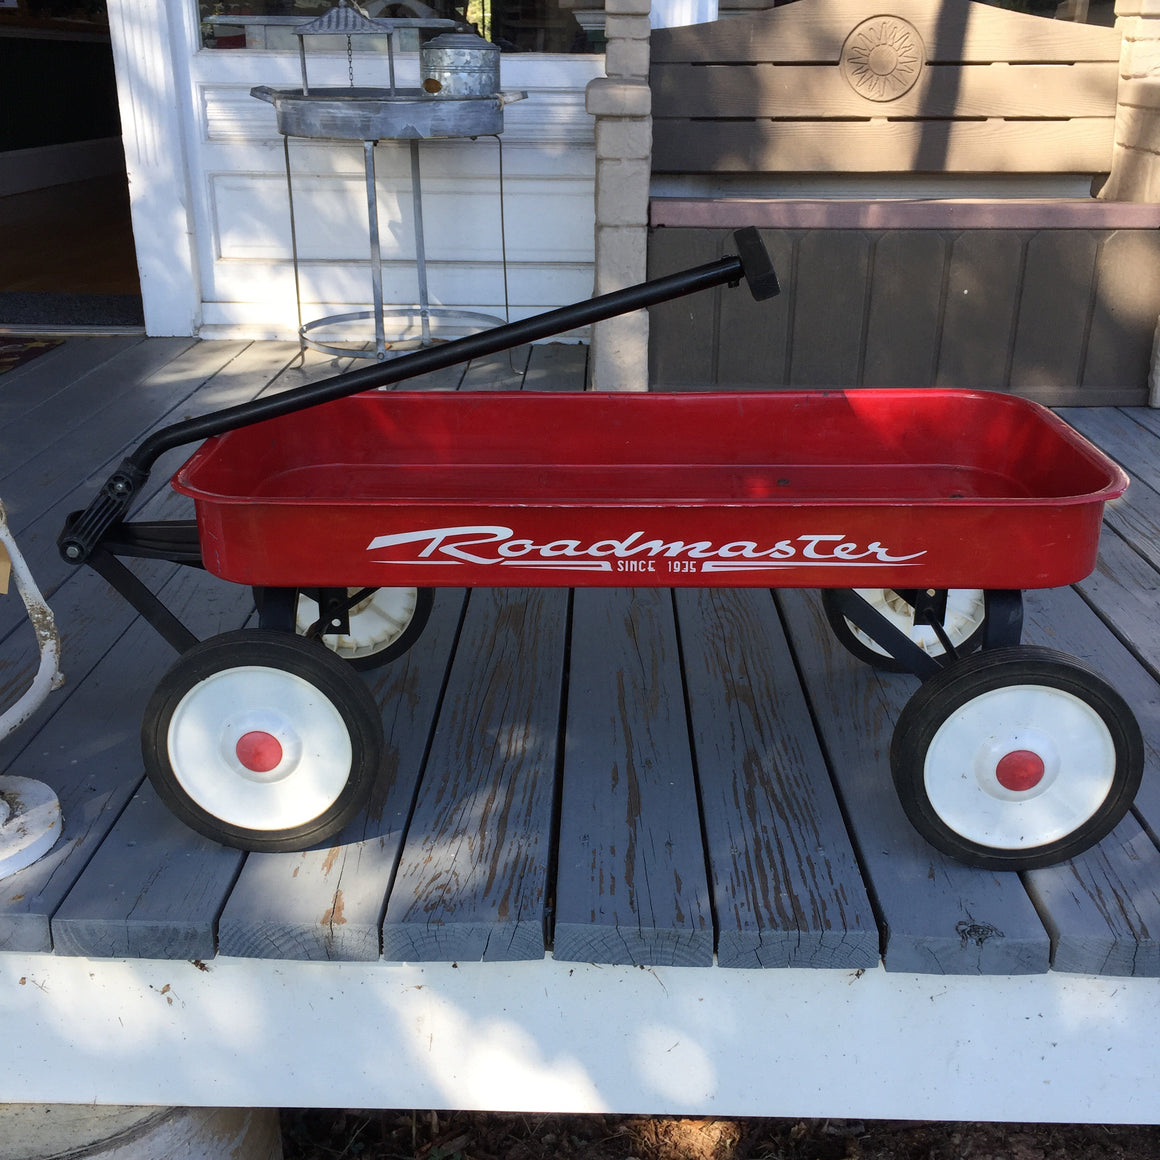 Vintage-style Roadmaster Little Red Wagon